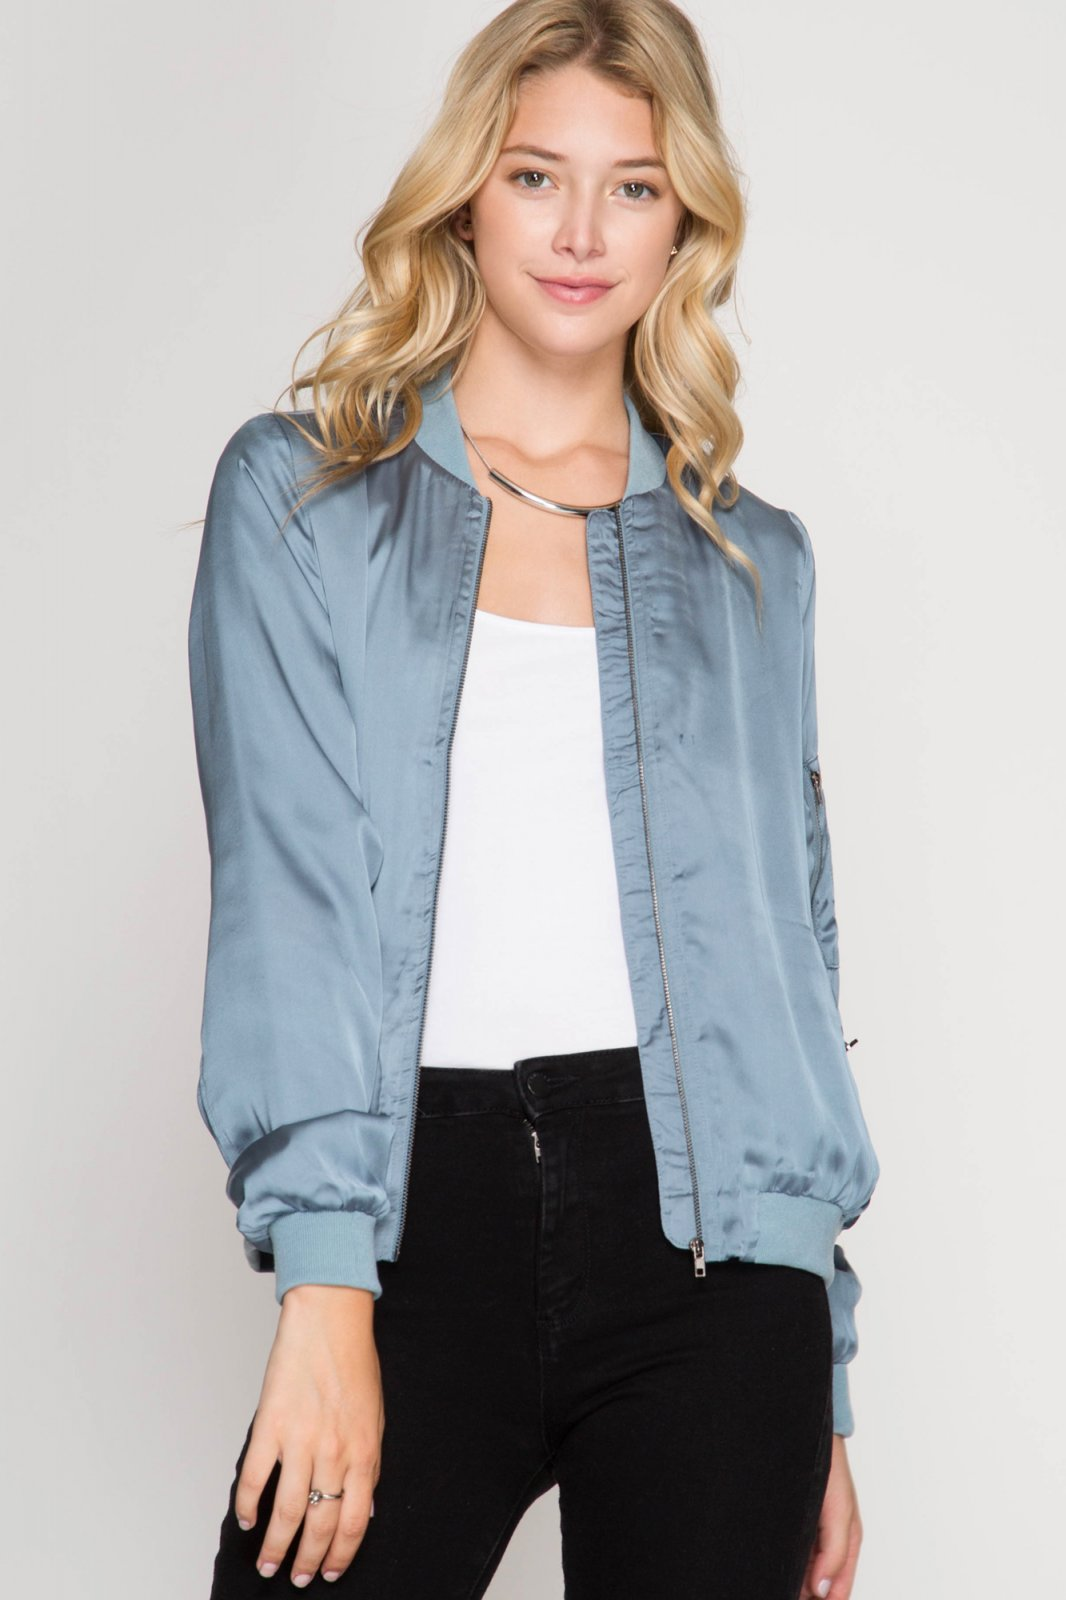 Bomber Jacket -  Satin  * Jr / Ms /Adult Pt DUSTY BLUE